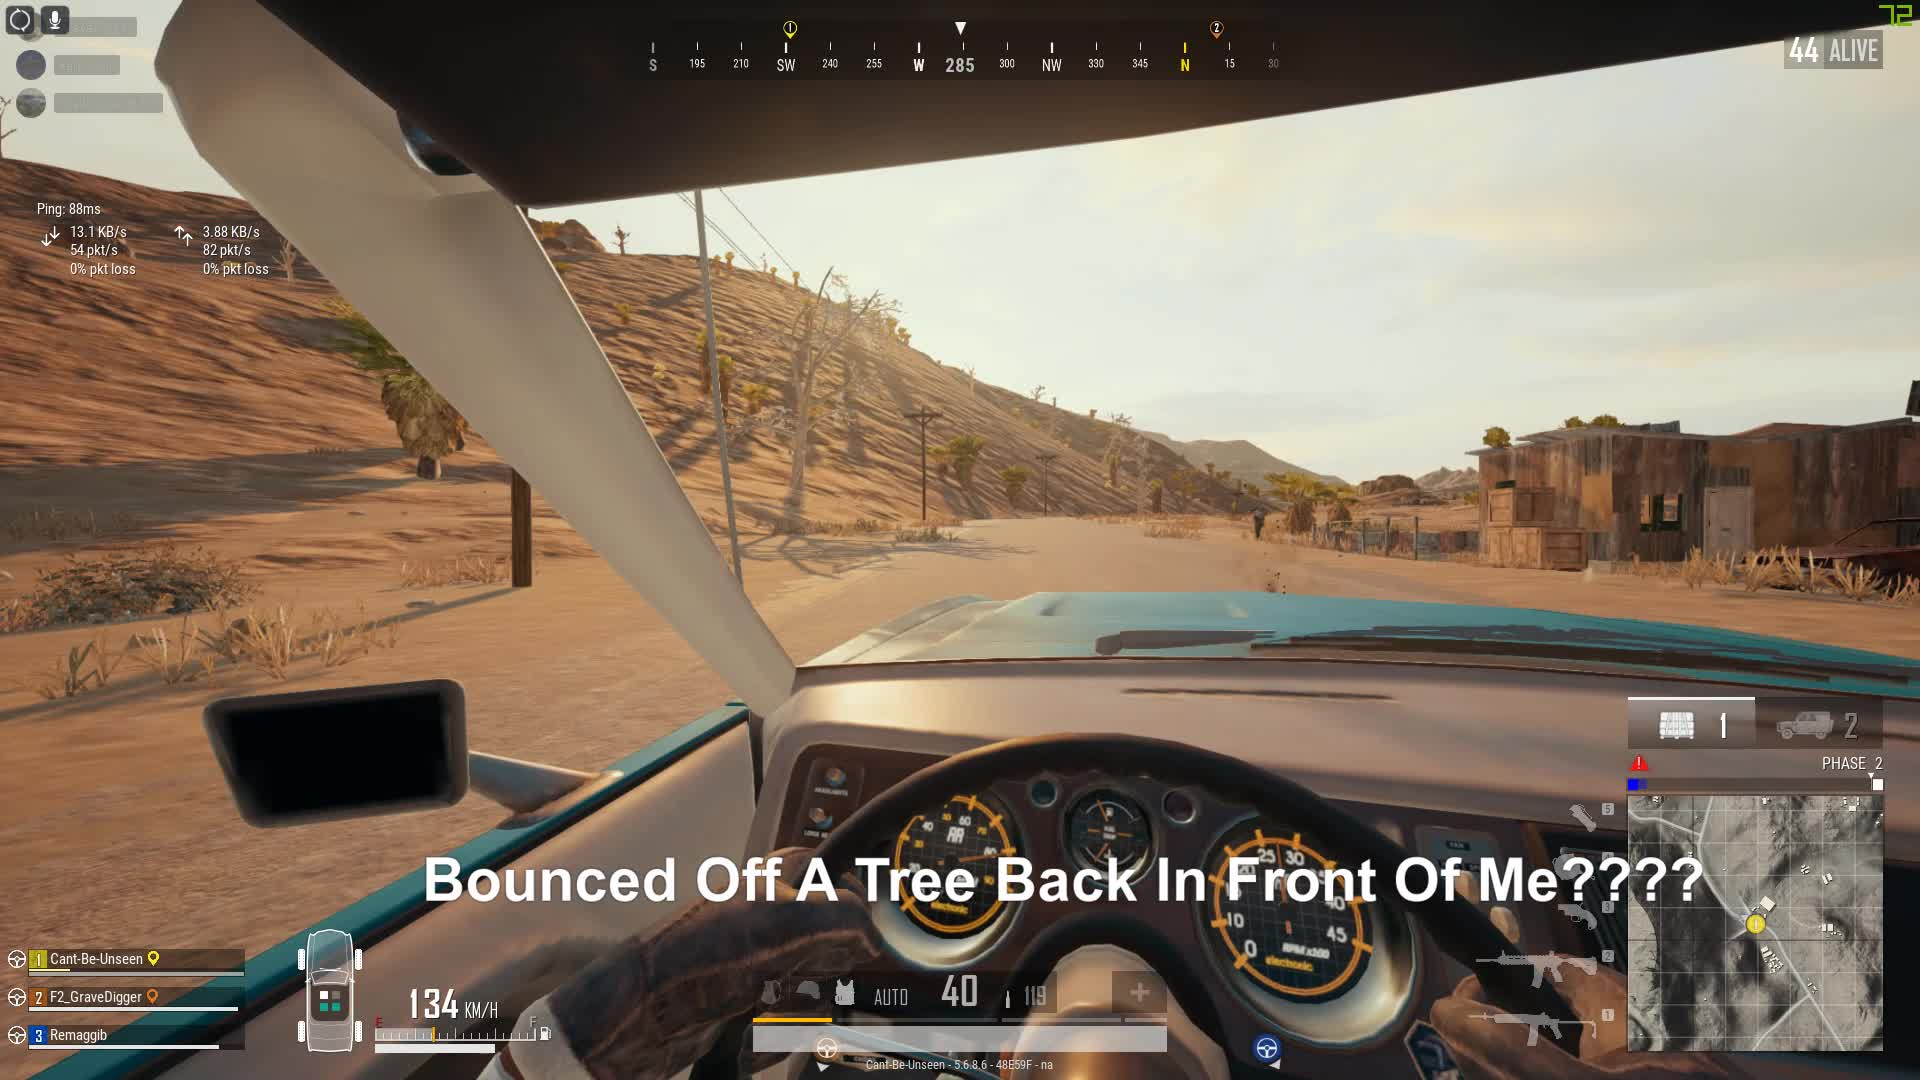 pubattlegrounds, pubg, Guy Bounced Off A Tree Back In Front Of My Car xDDD GIFs